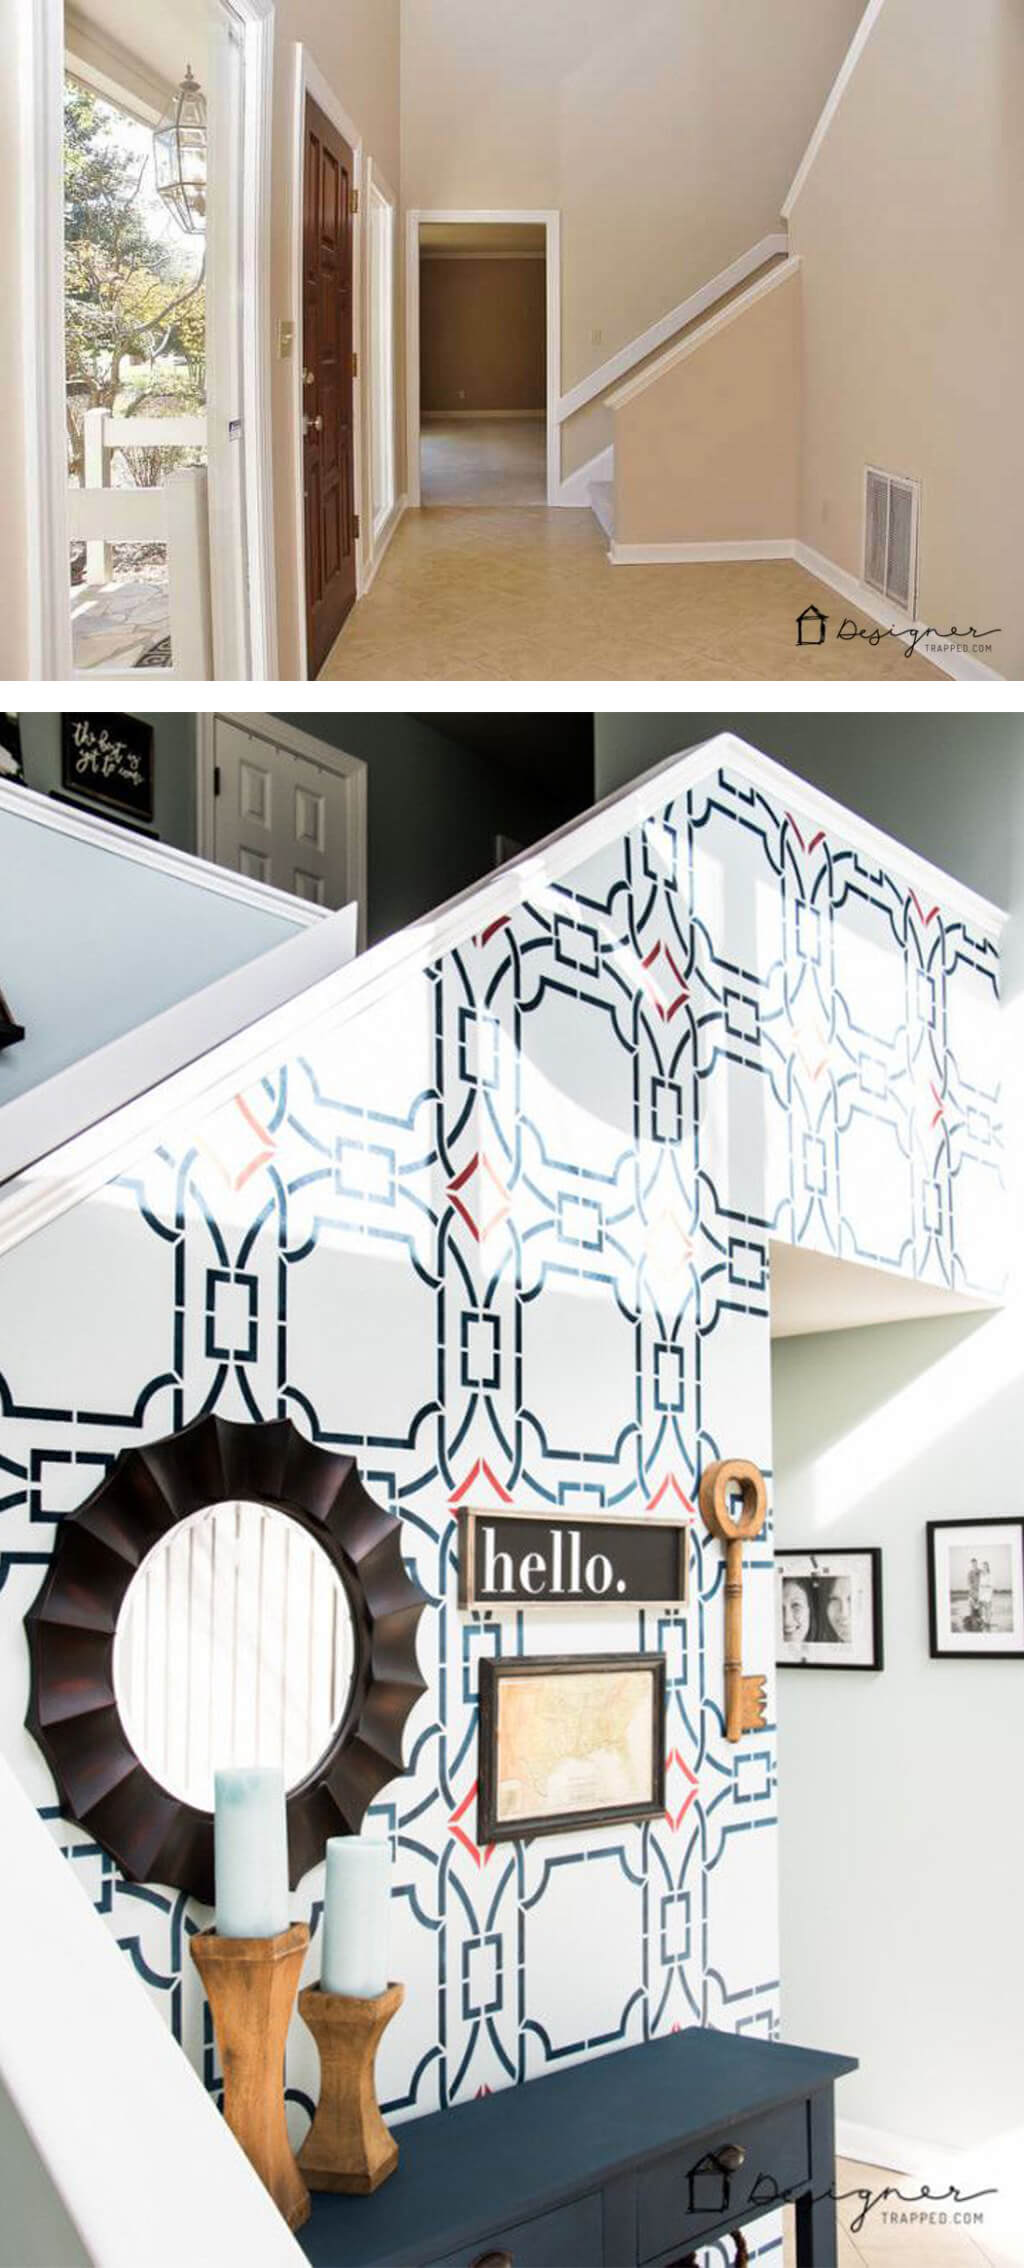 Highbrow Graphic Art Deco Wall Design